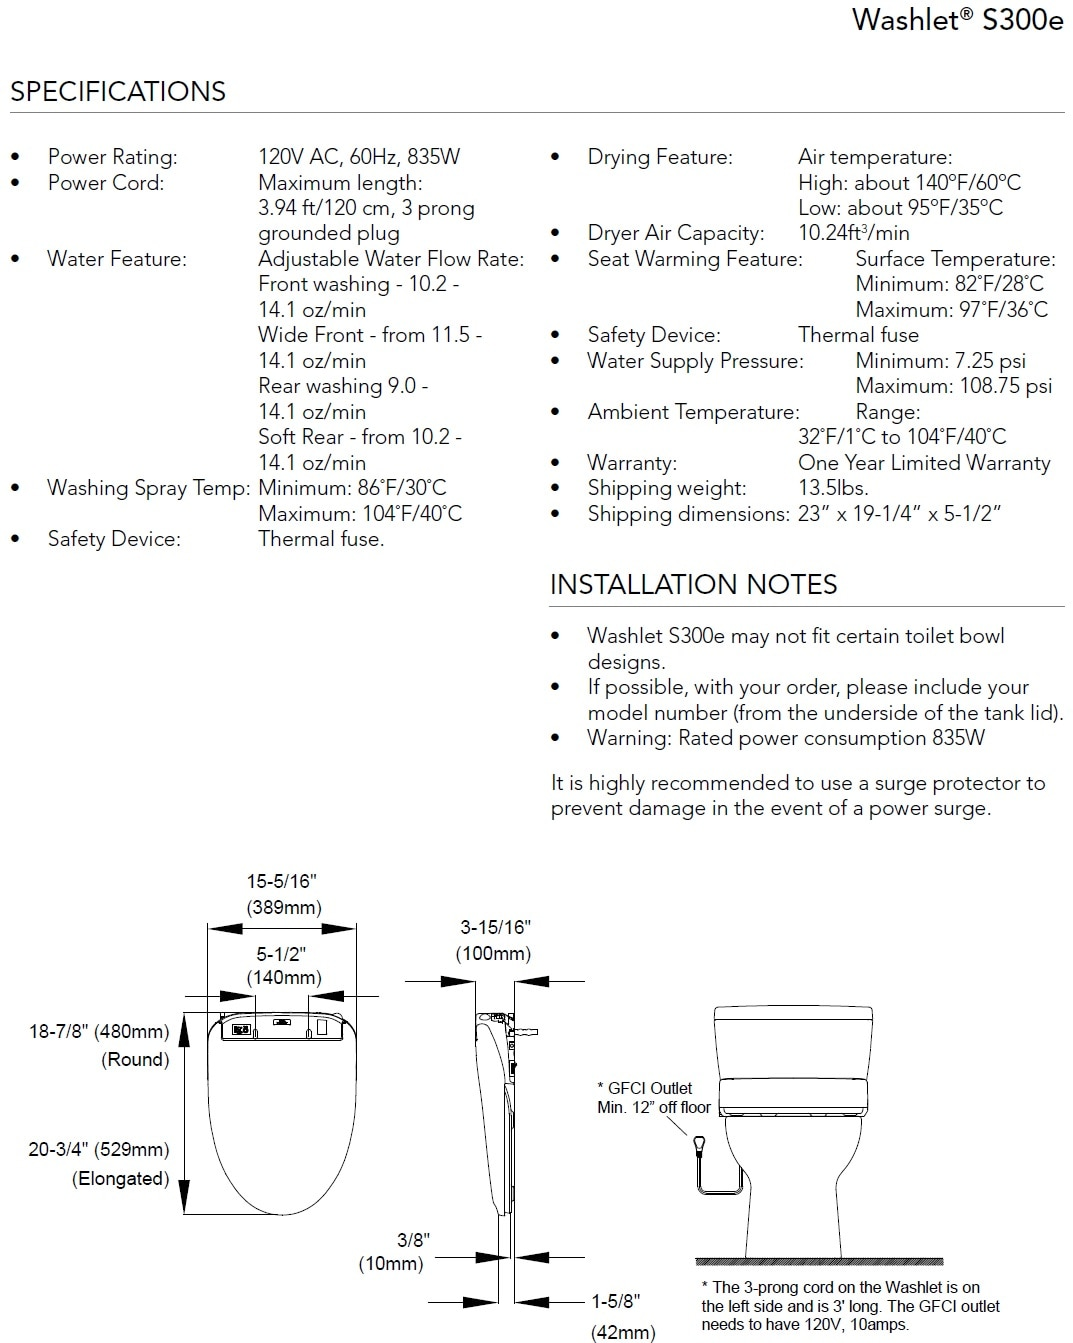 TOTO S300e Washlet Specifications